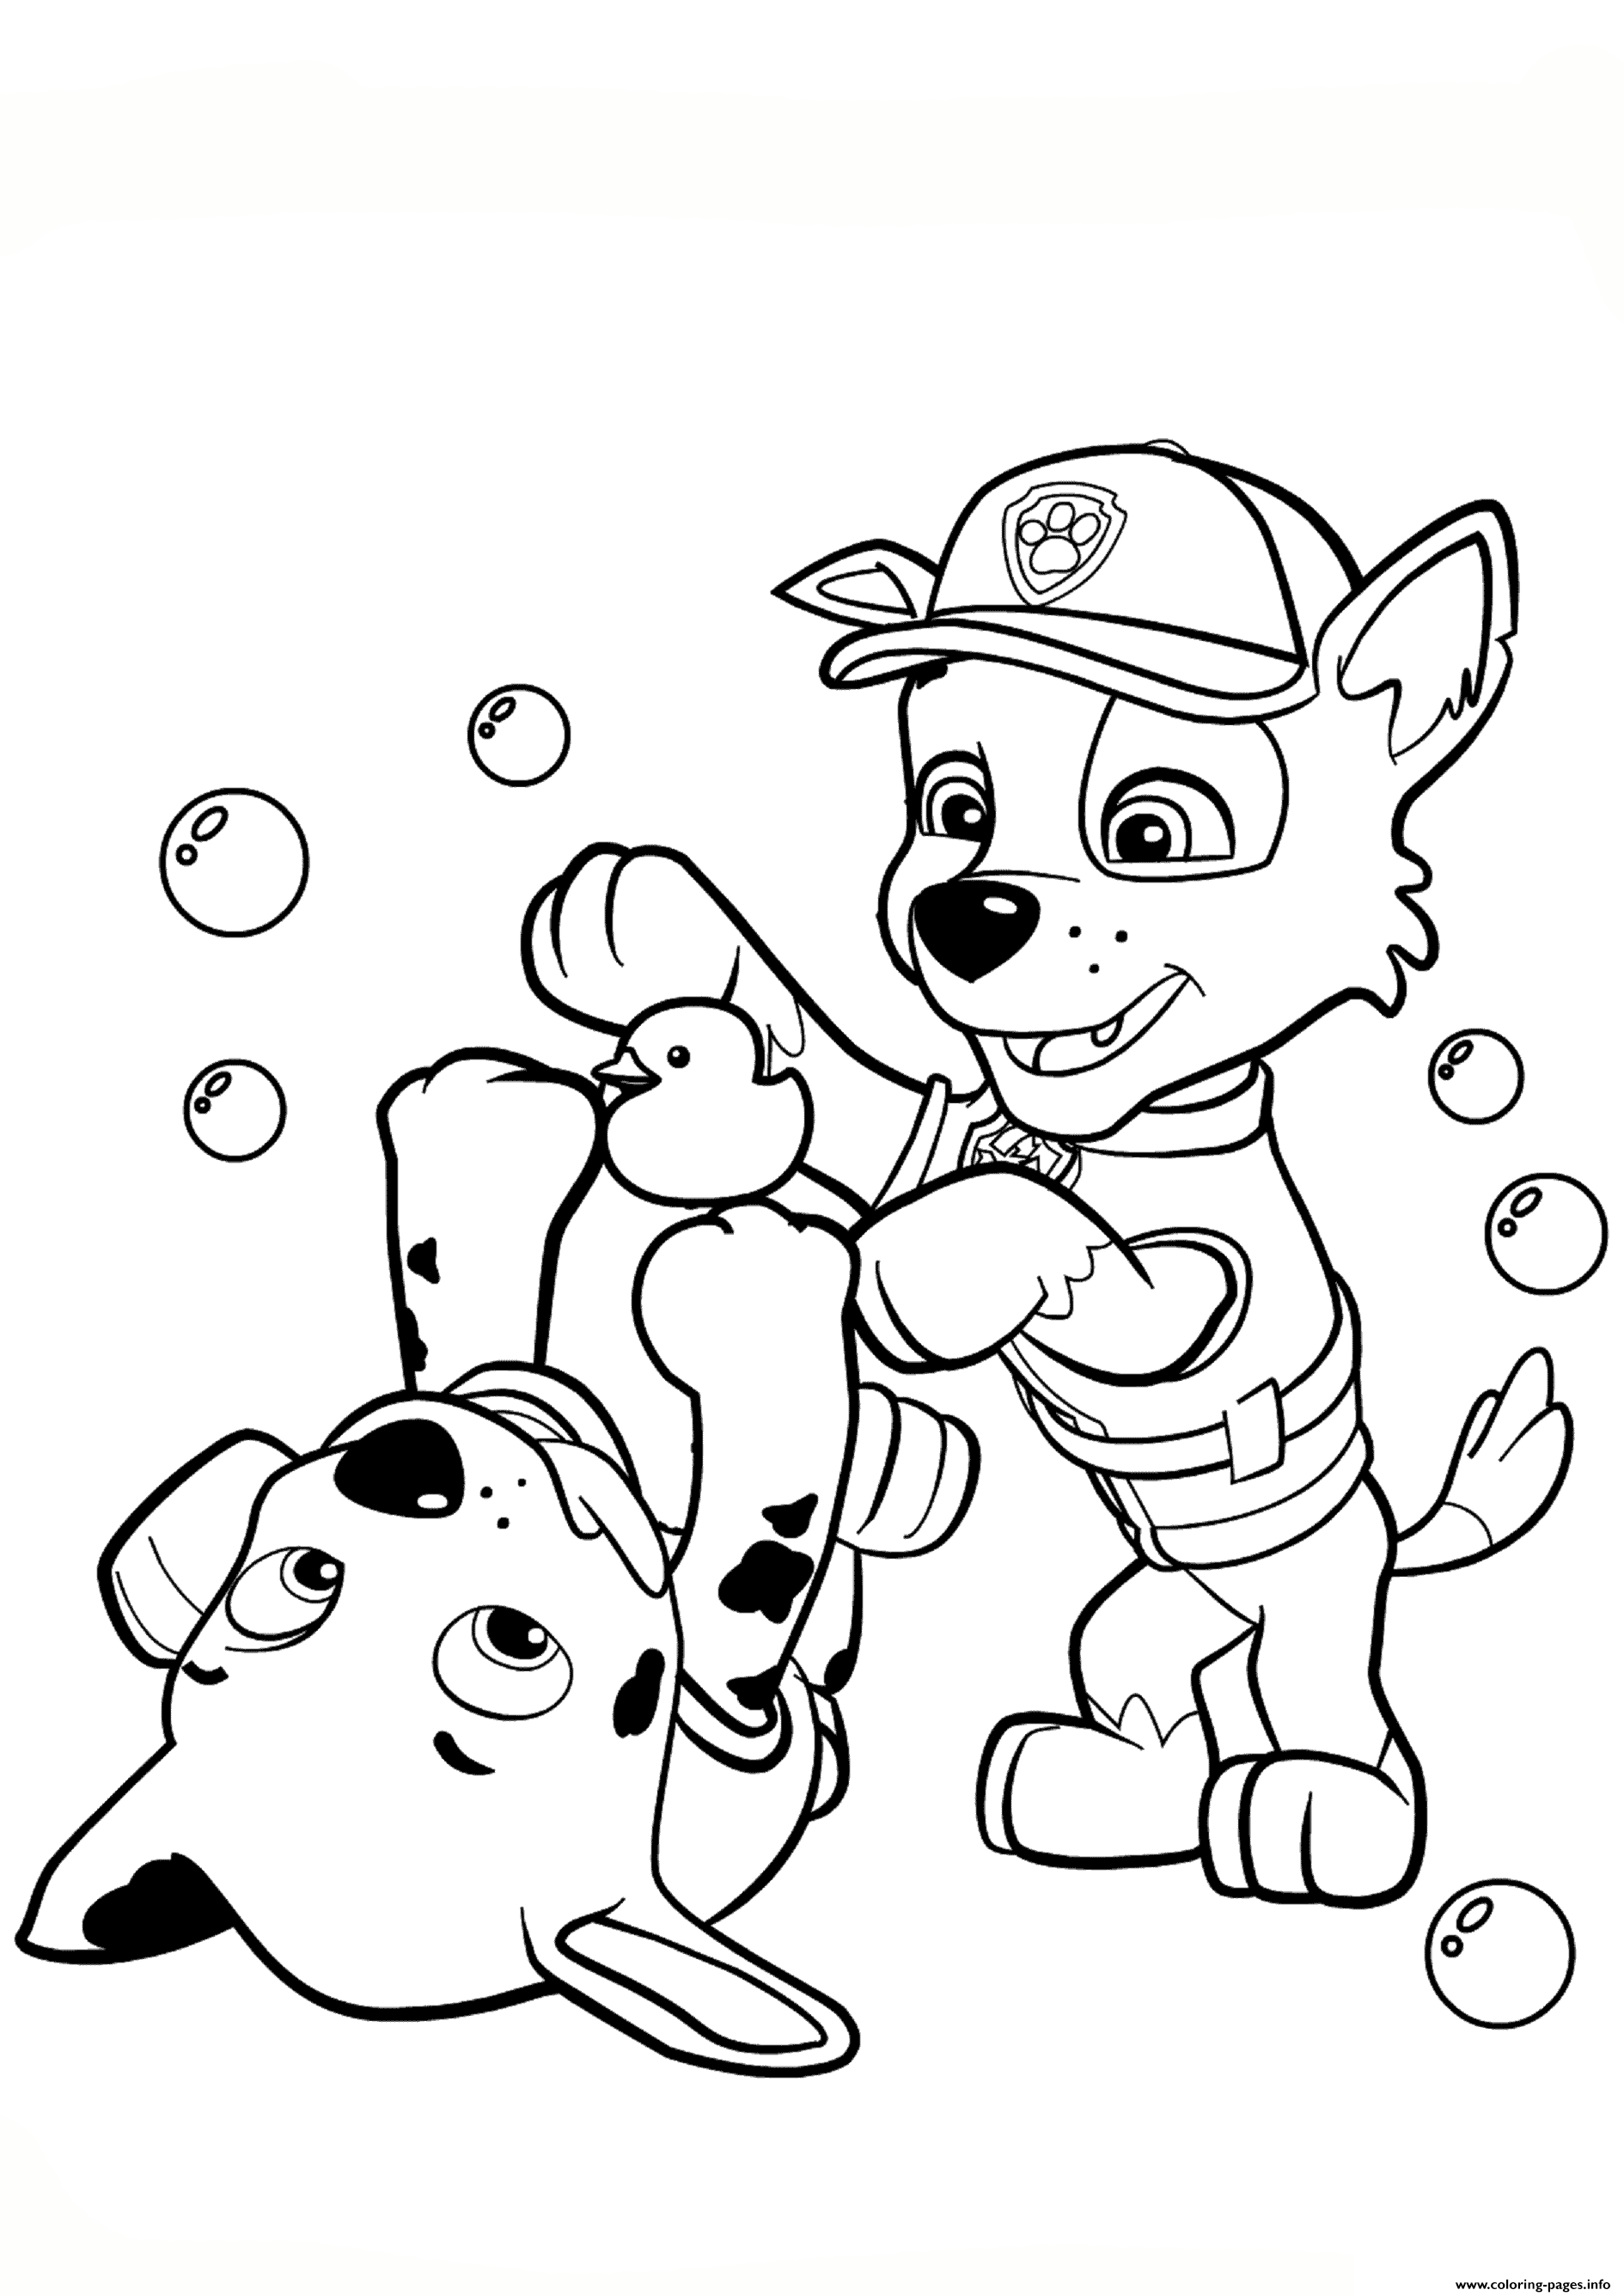 Coloring Pages Paw Patrol Rocky : Paw patrol rocky and marshall coloring pages printable